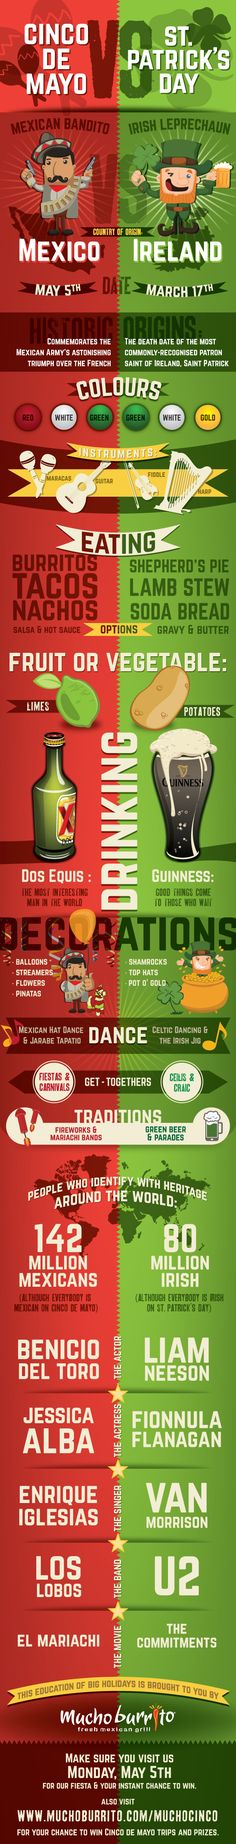 Cinco de Mayo VS St. Patrick's Day [infographic] - Daily Infographic